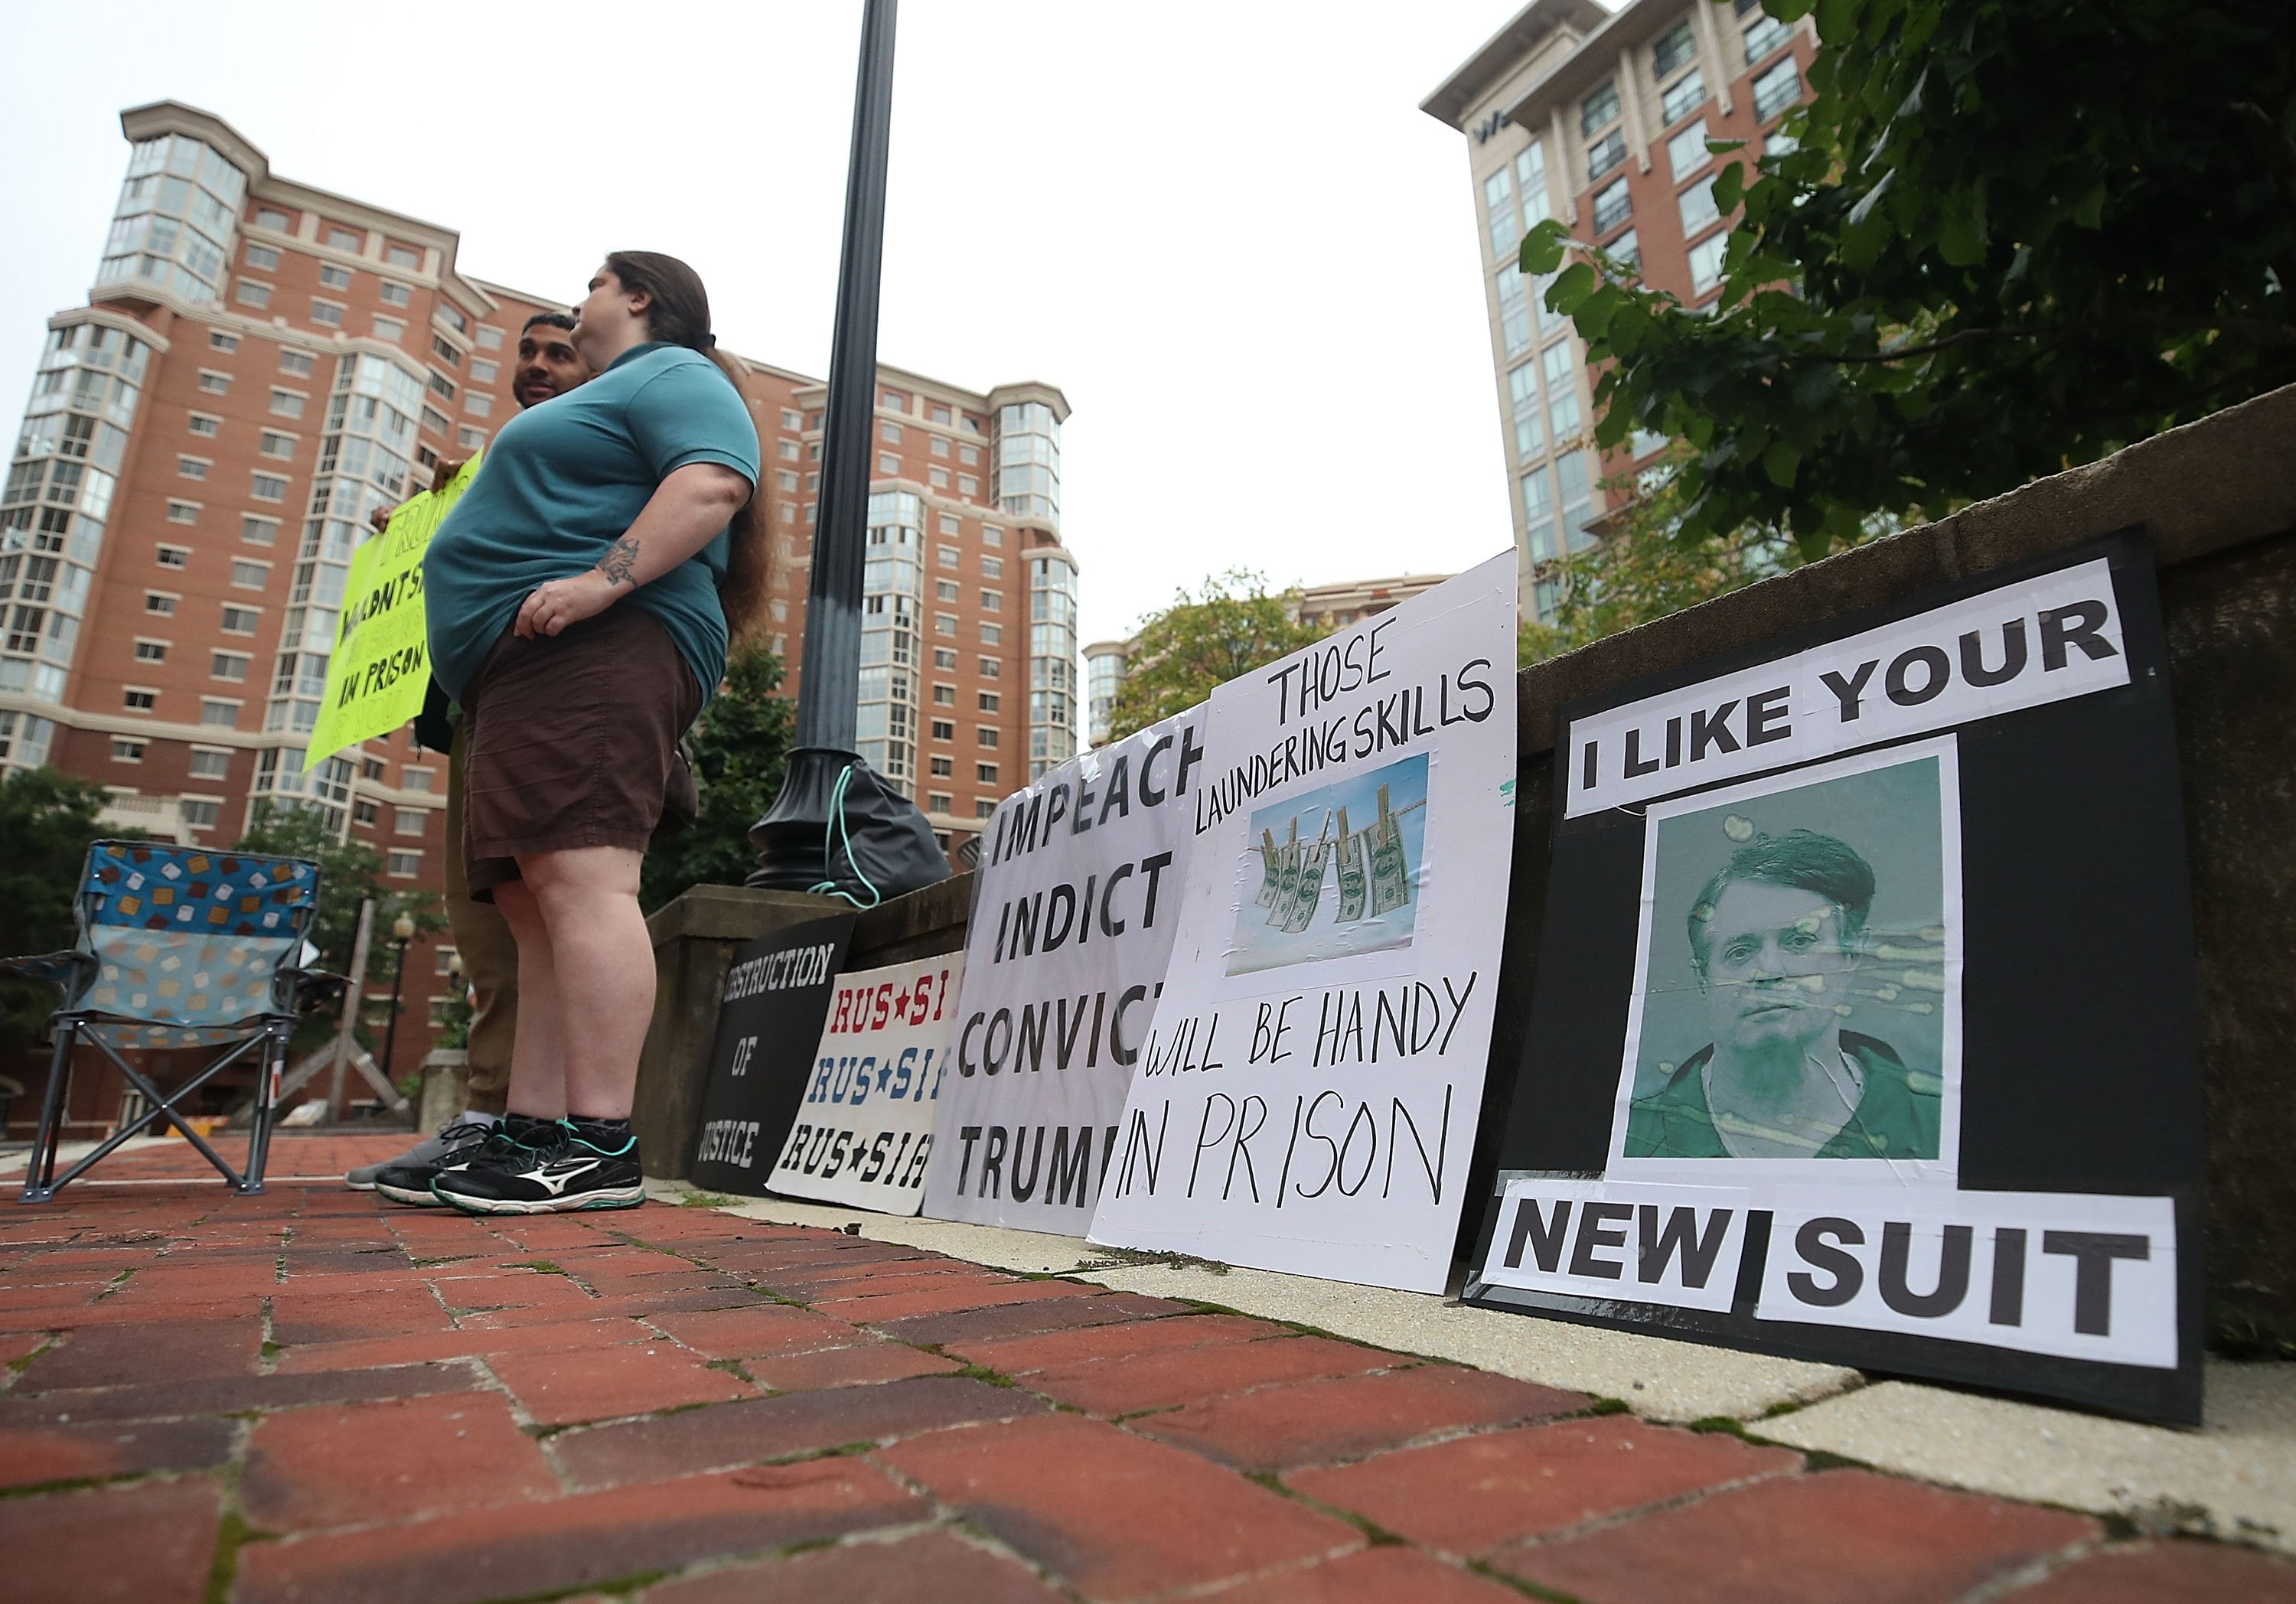 Anti Manafort protesters outside the Albert V. Bryan United States Courthouse in the summer of 2018 | Photo: Getty Images